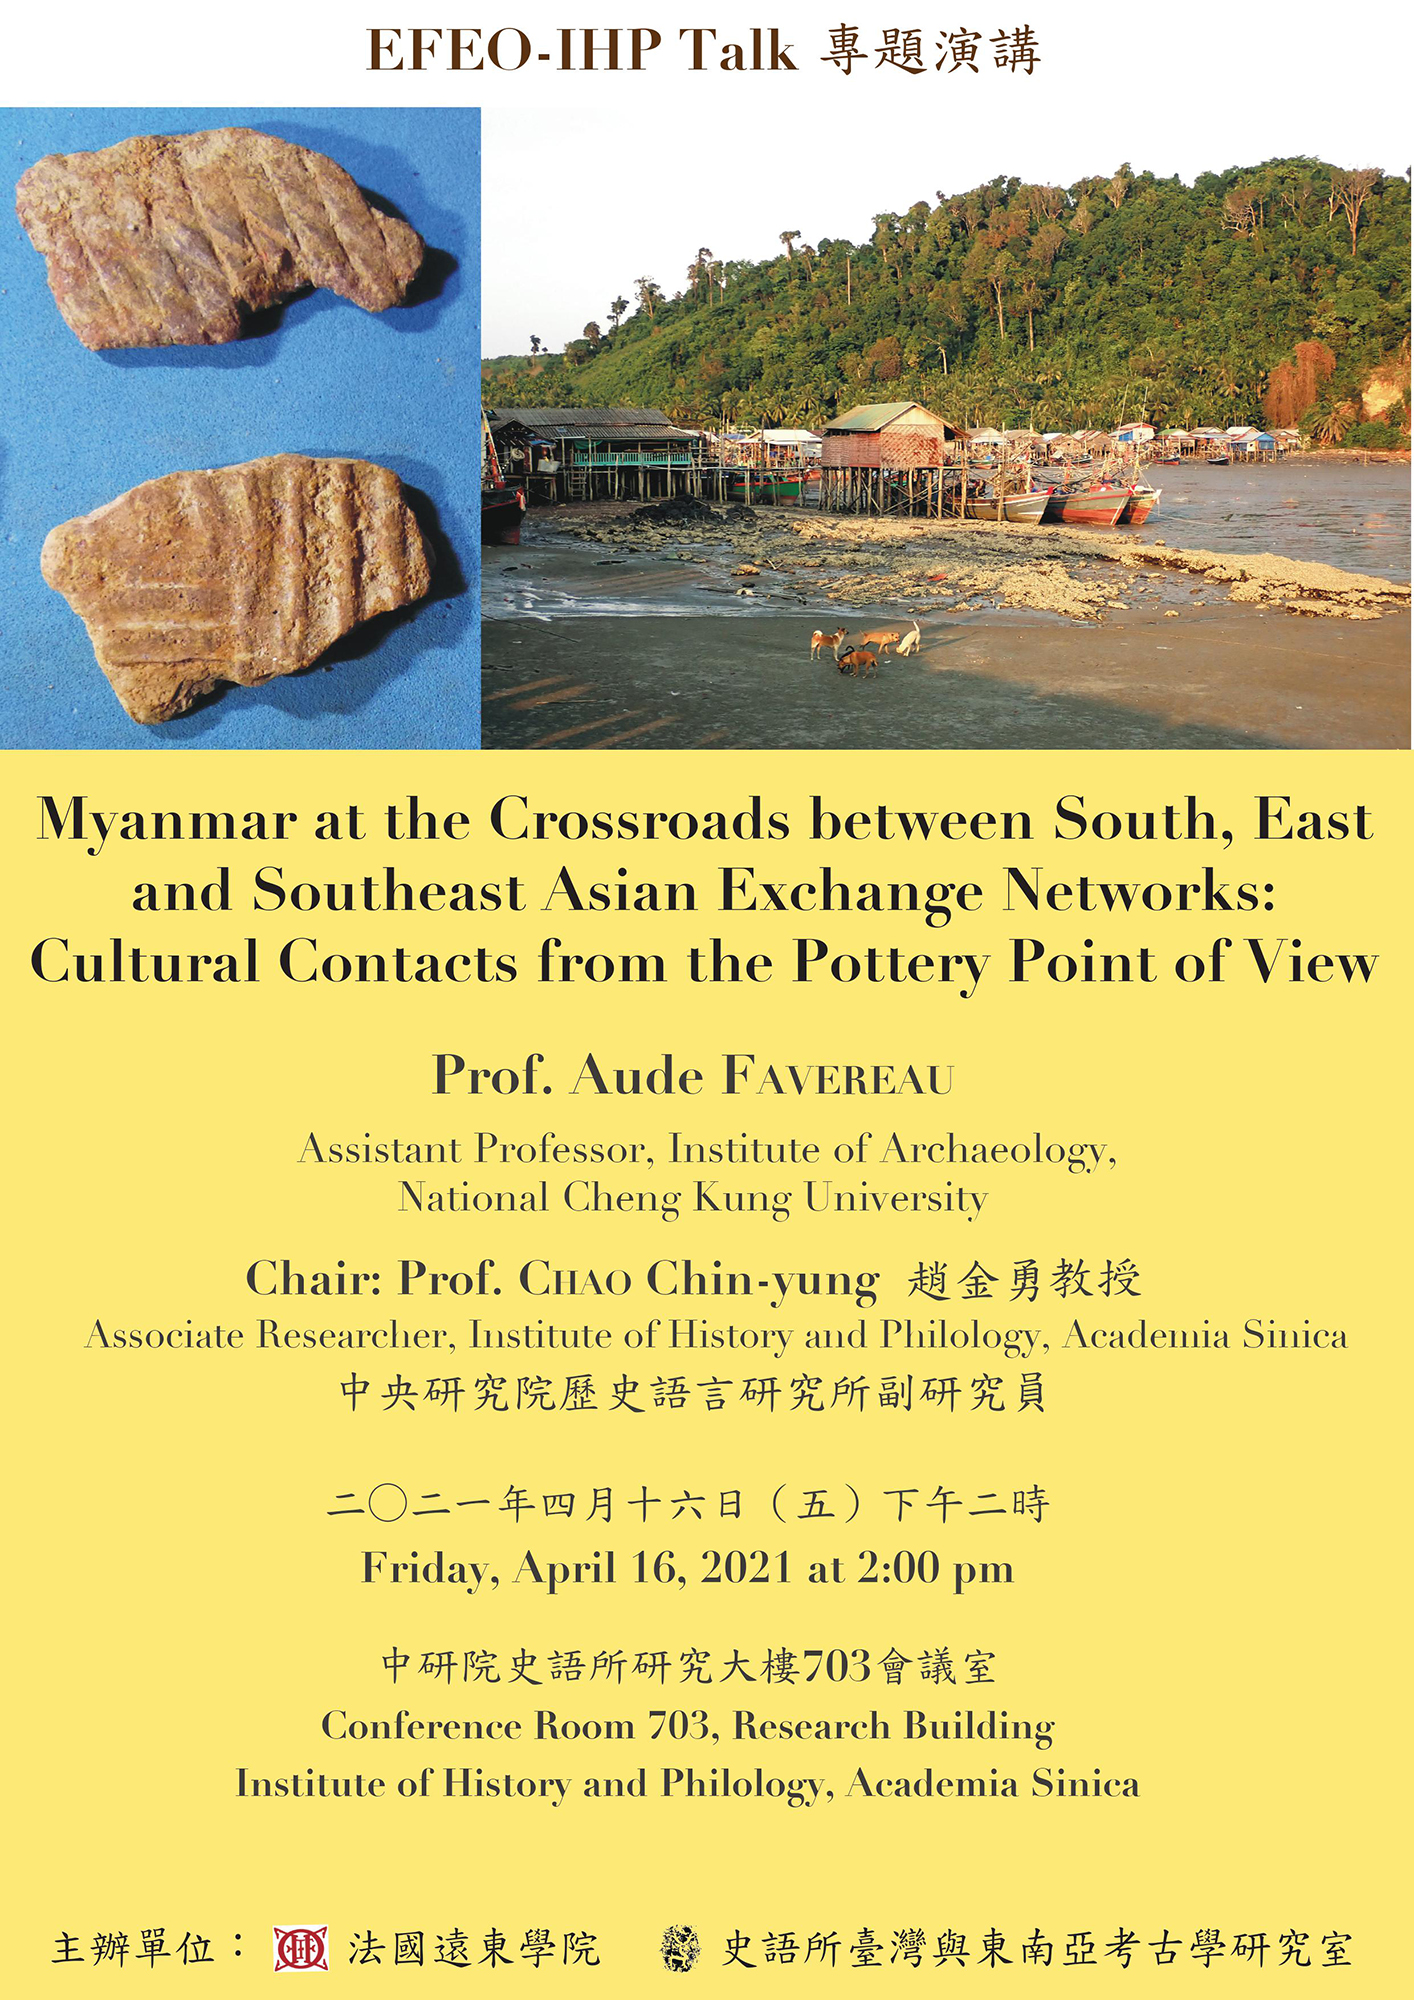 Myanmar at the Crossroads between South, East and Southeast Asian Exchange Networks: Cultural Contacts from the Pottery Point of View